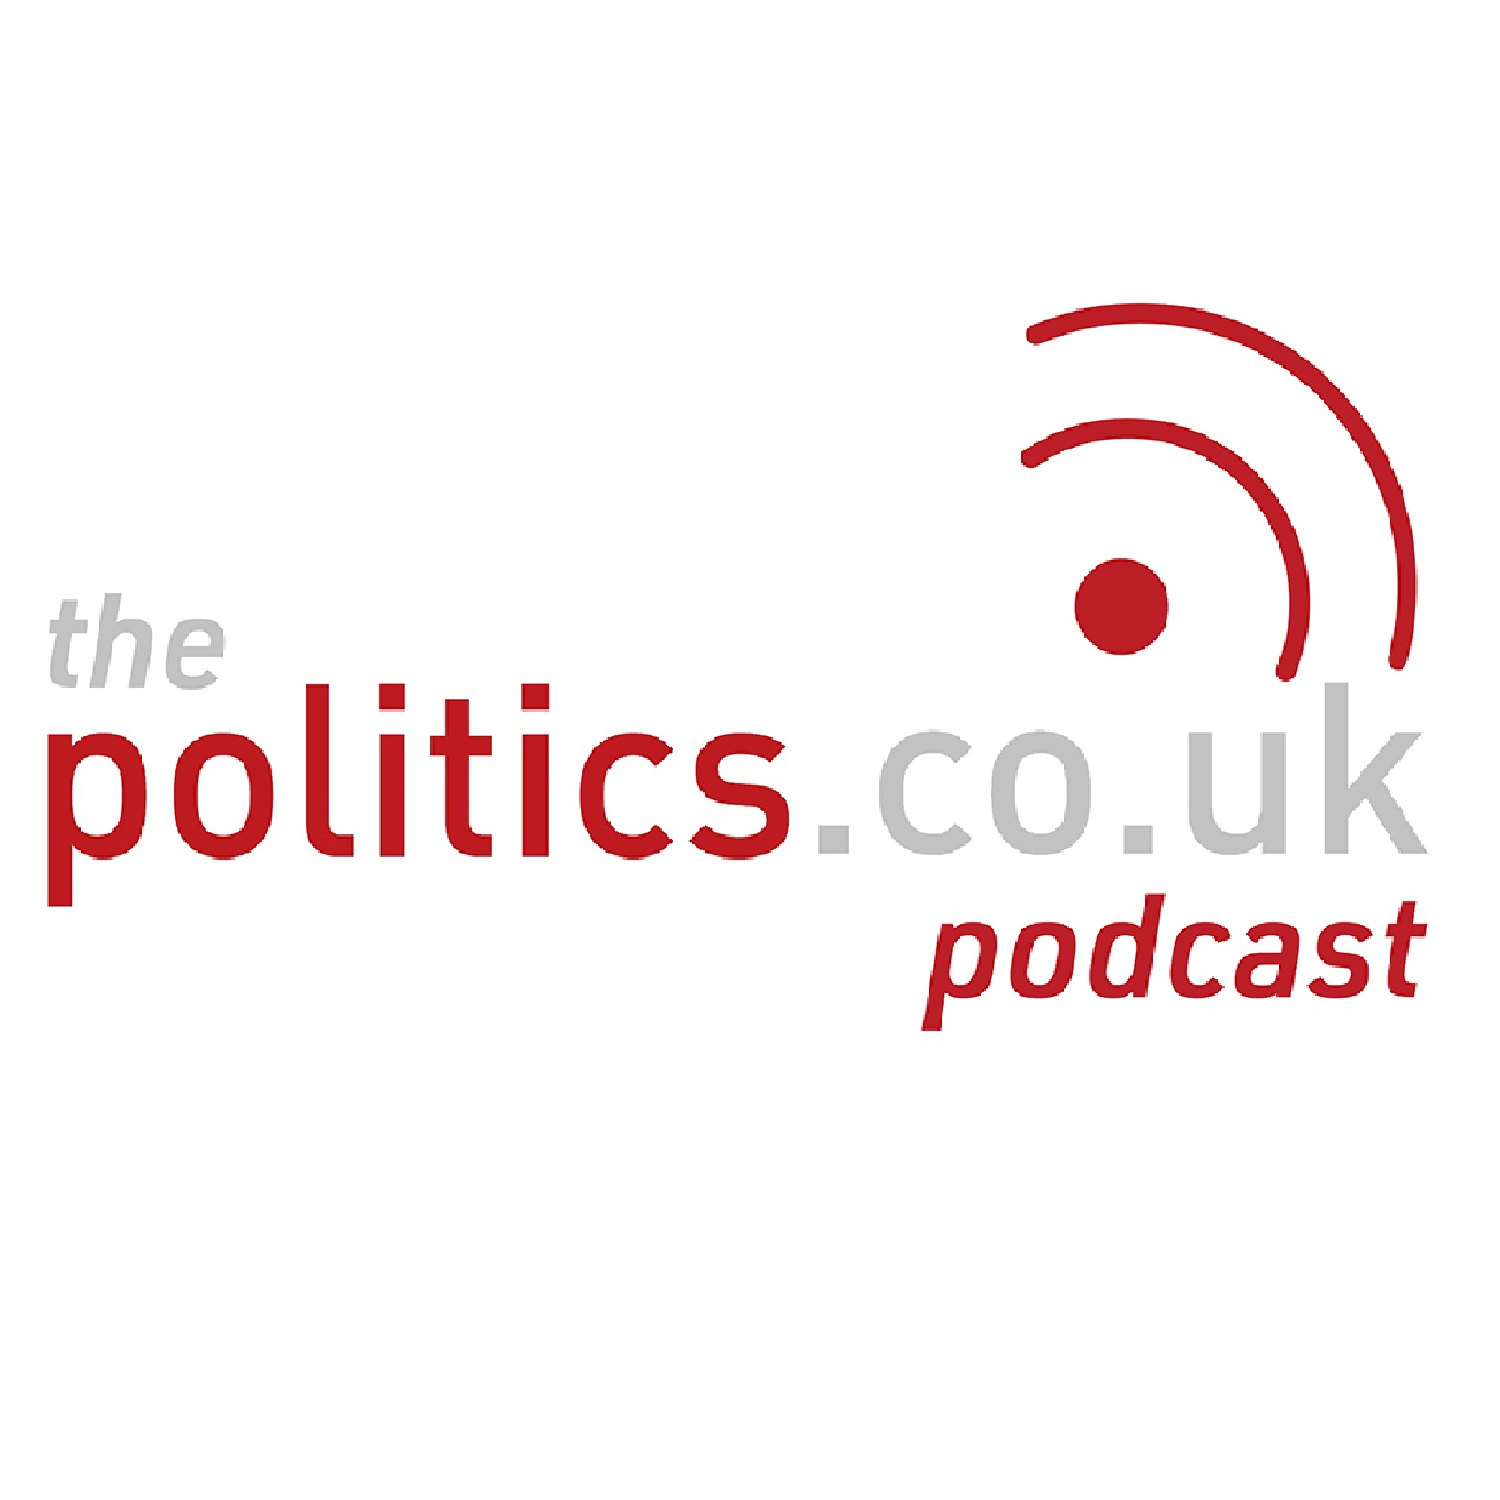 The Politics.co.uk Podcast - the Windrush scandal